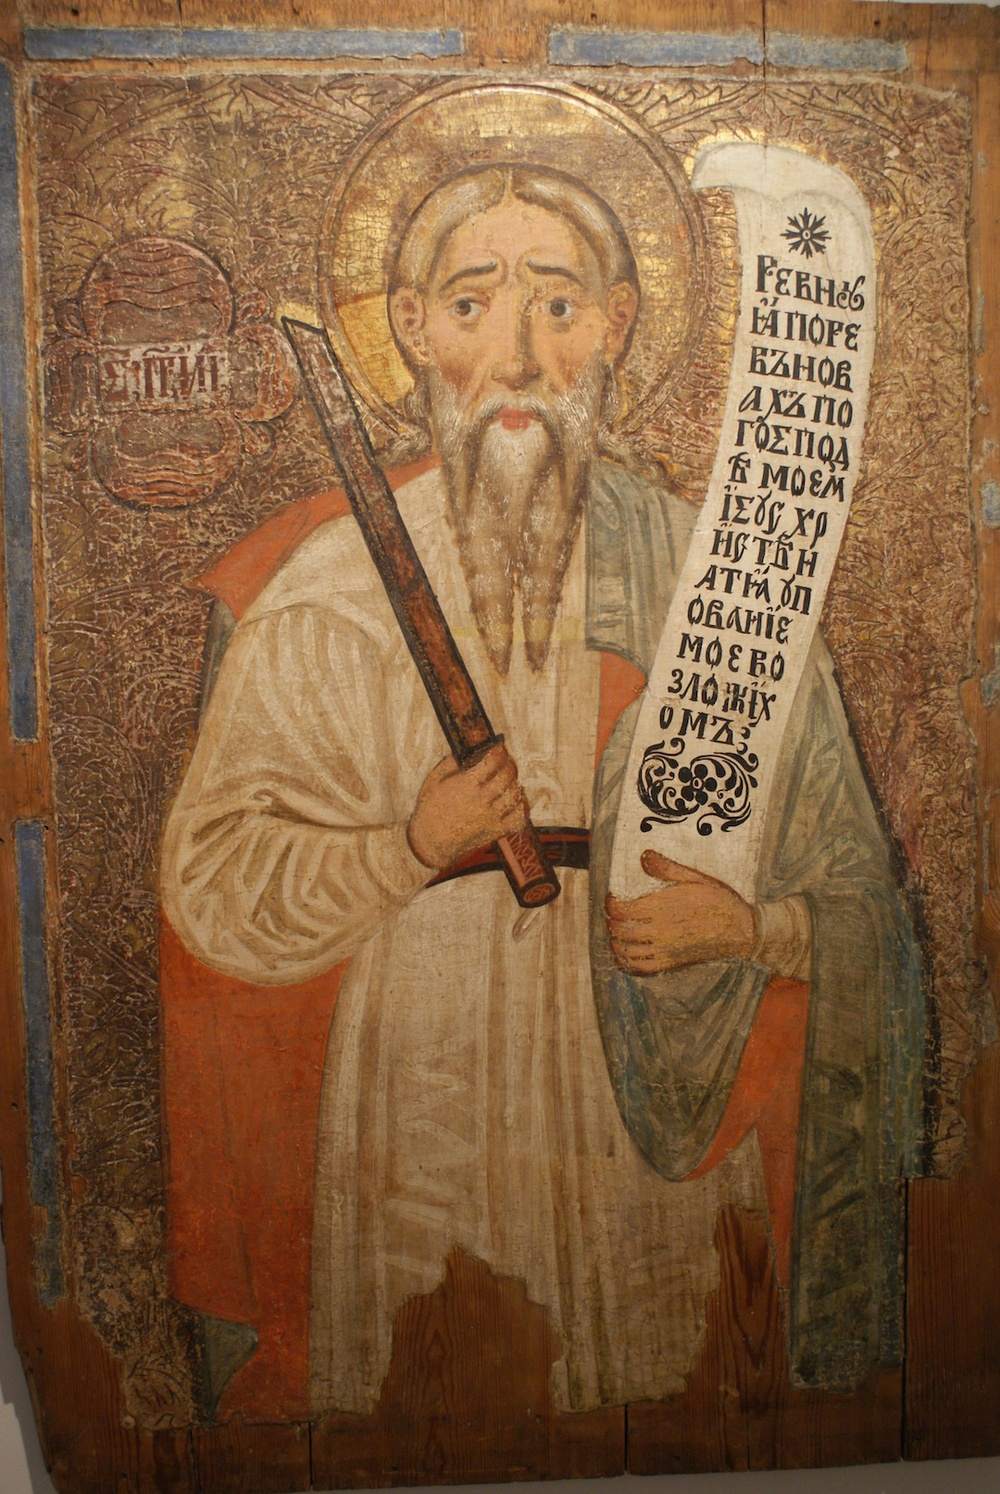 The Prophet Elijah. Credit: Wikimedia Commons.